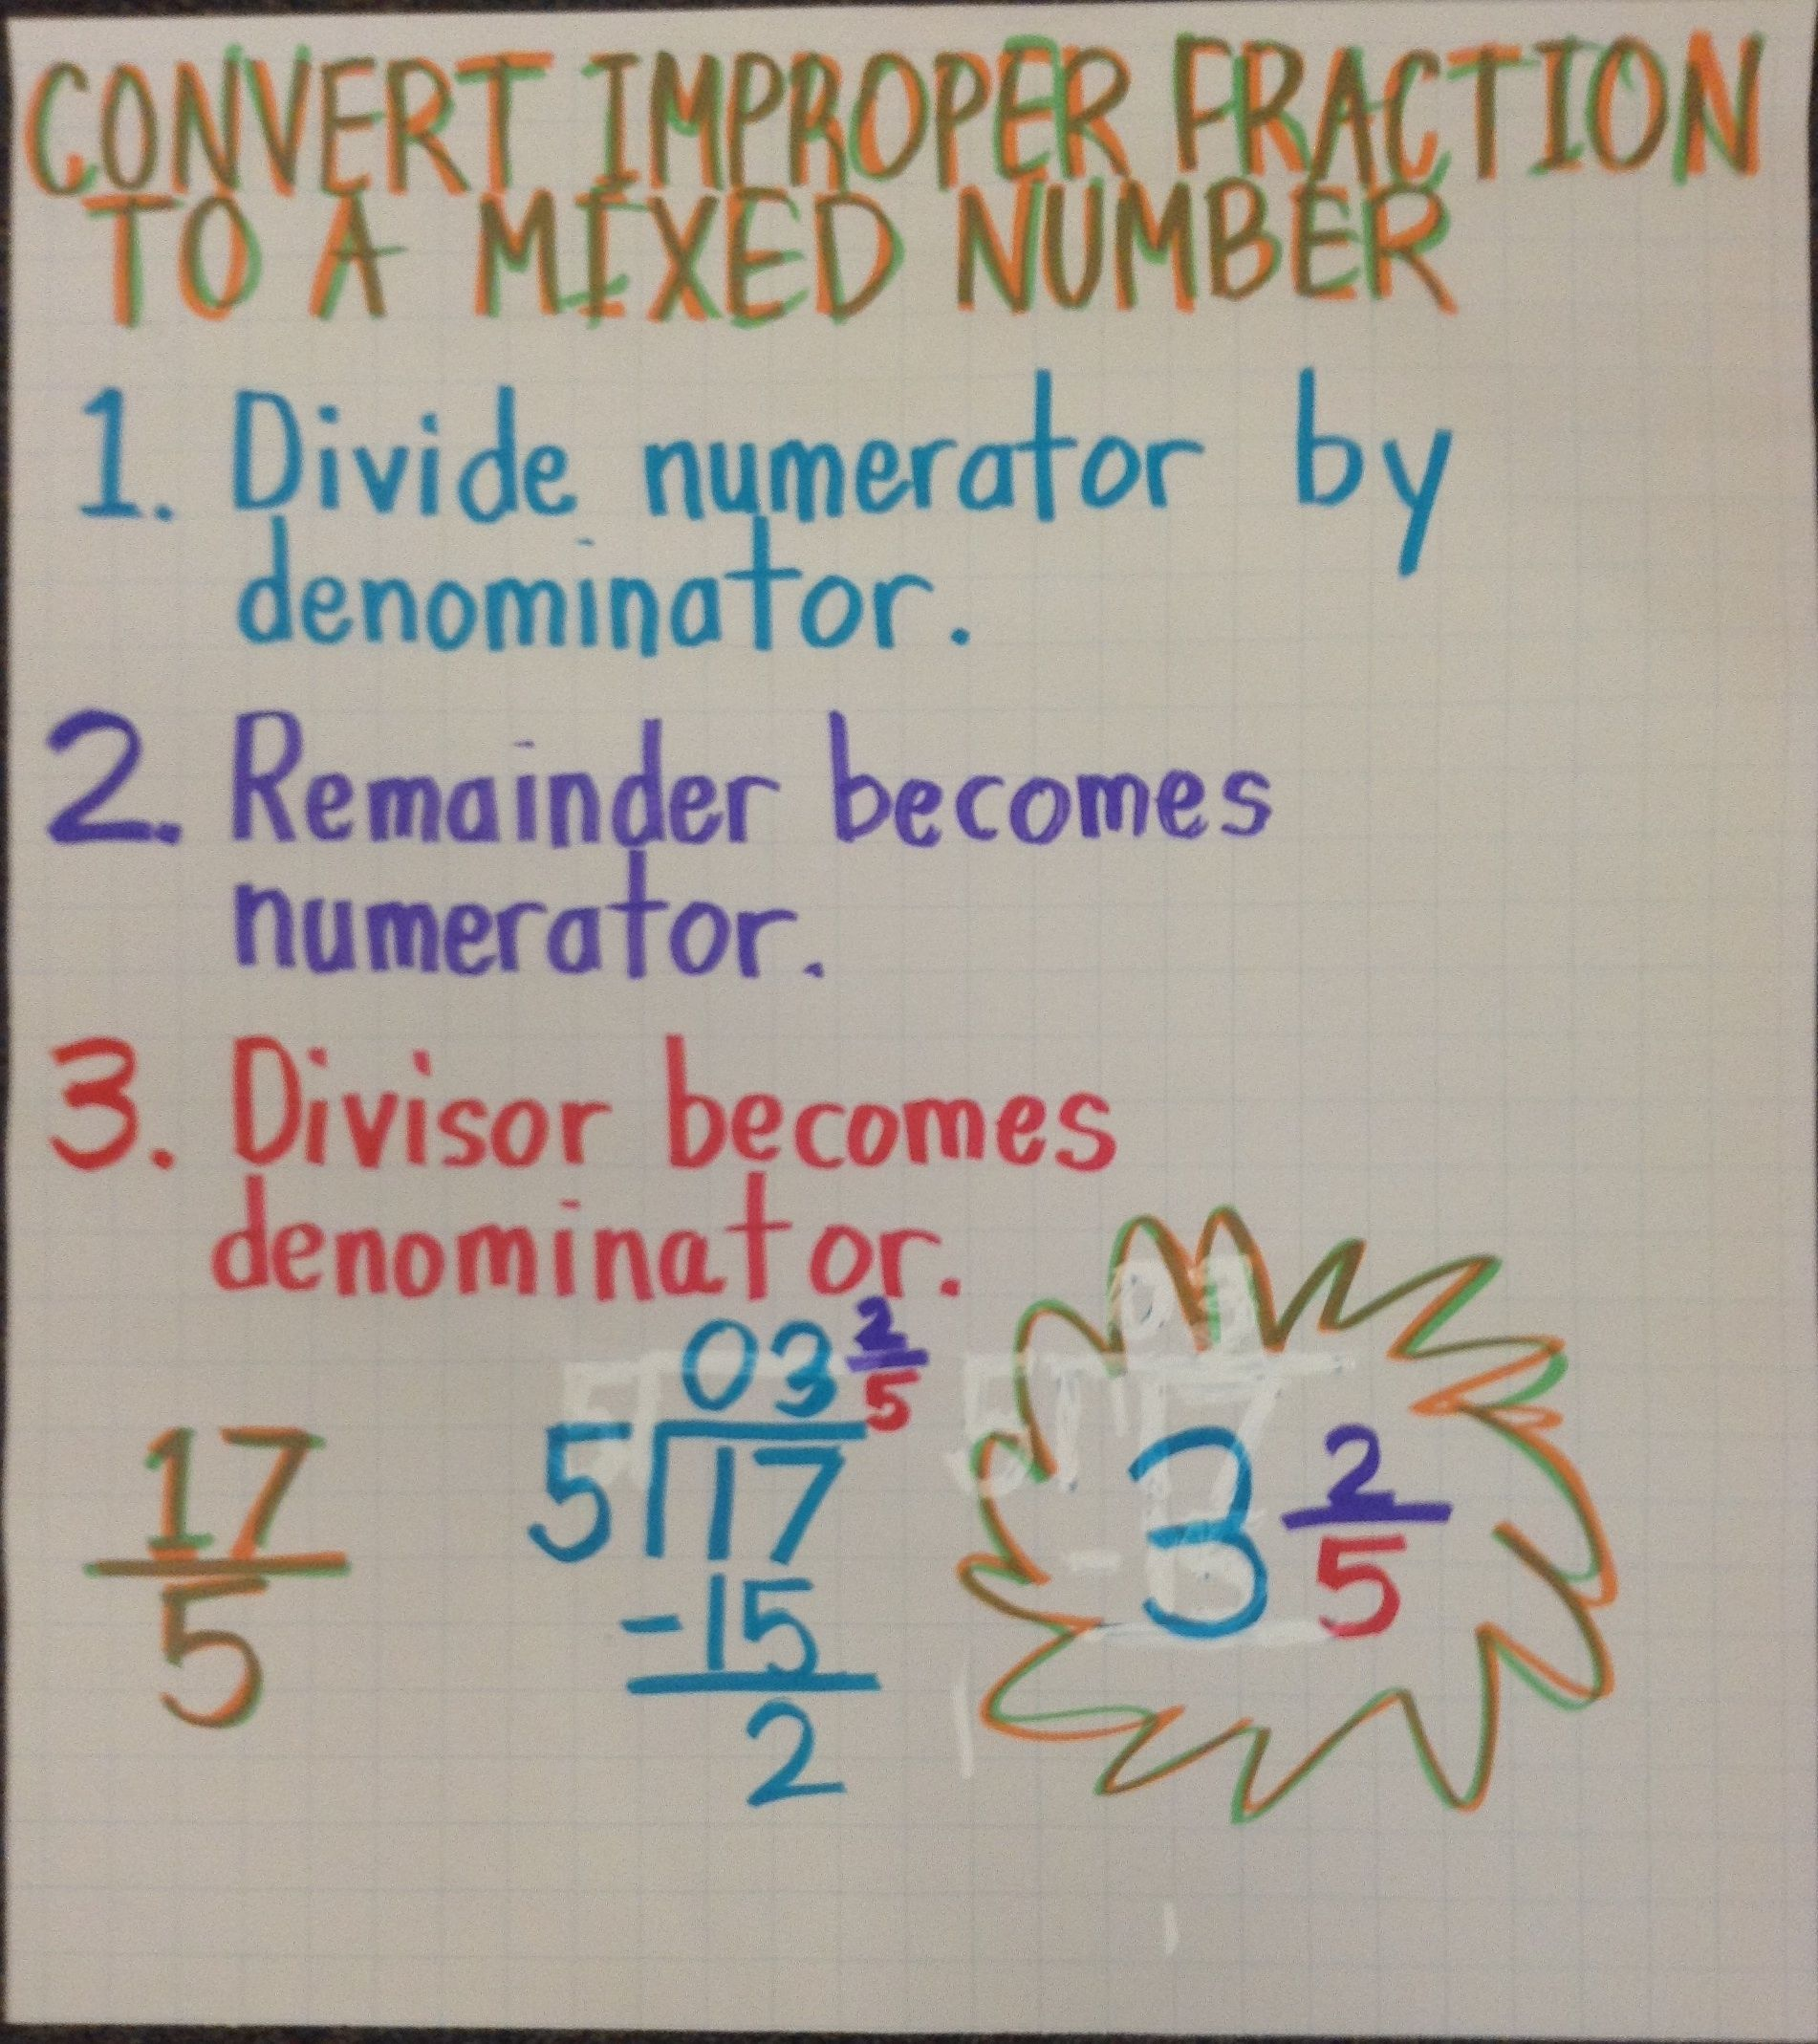 how to make remanider into decimal